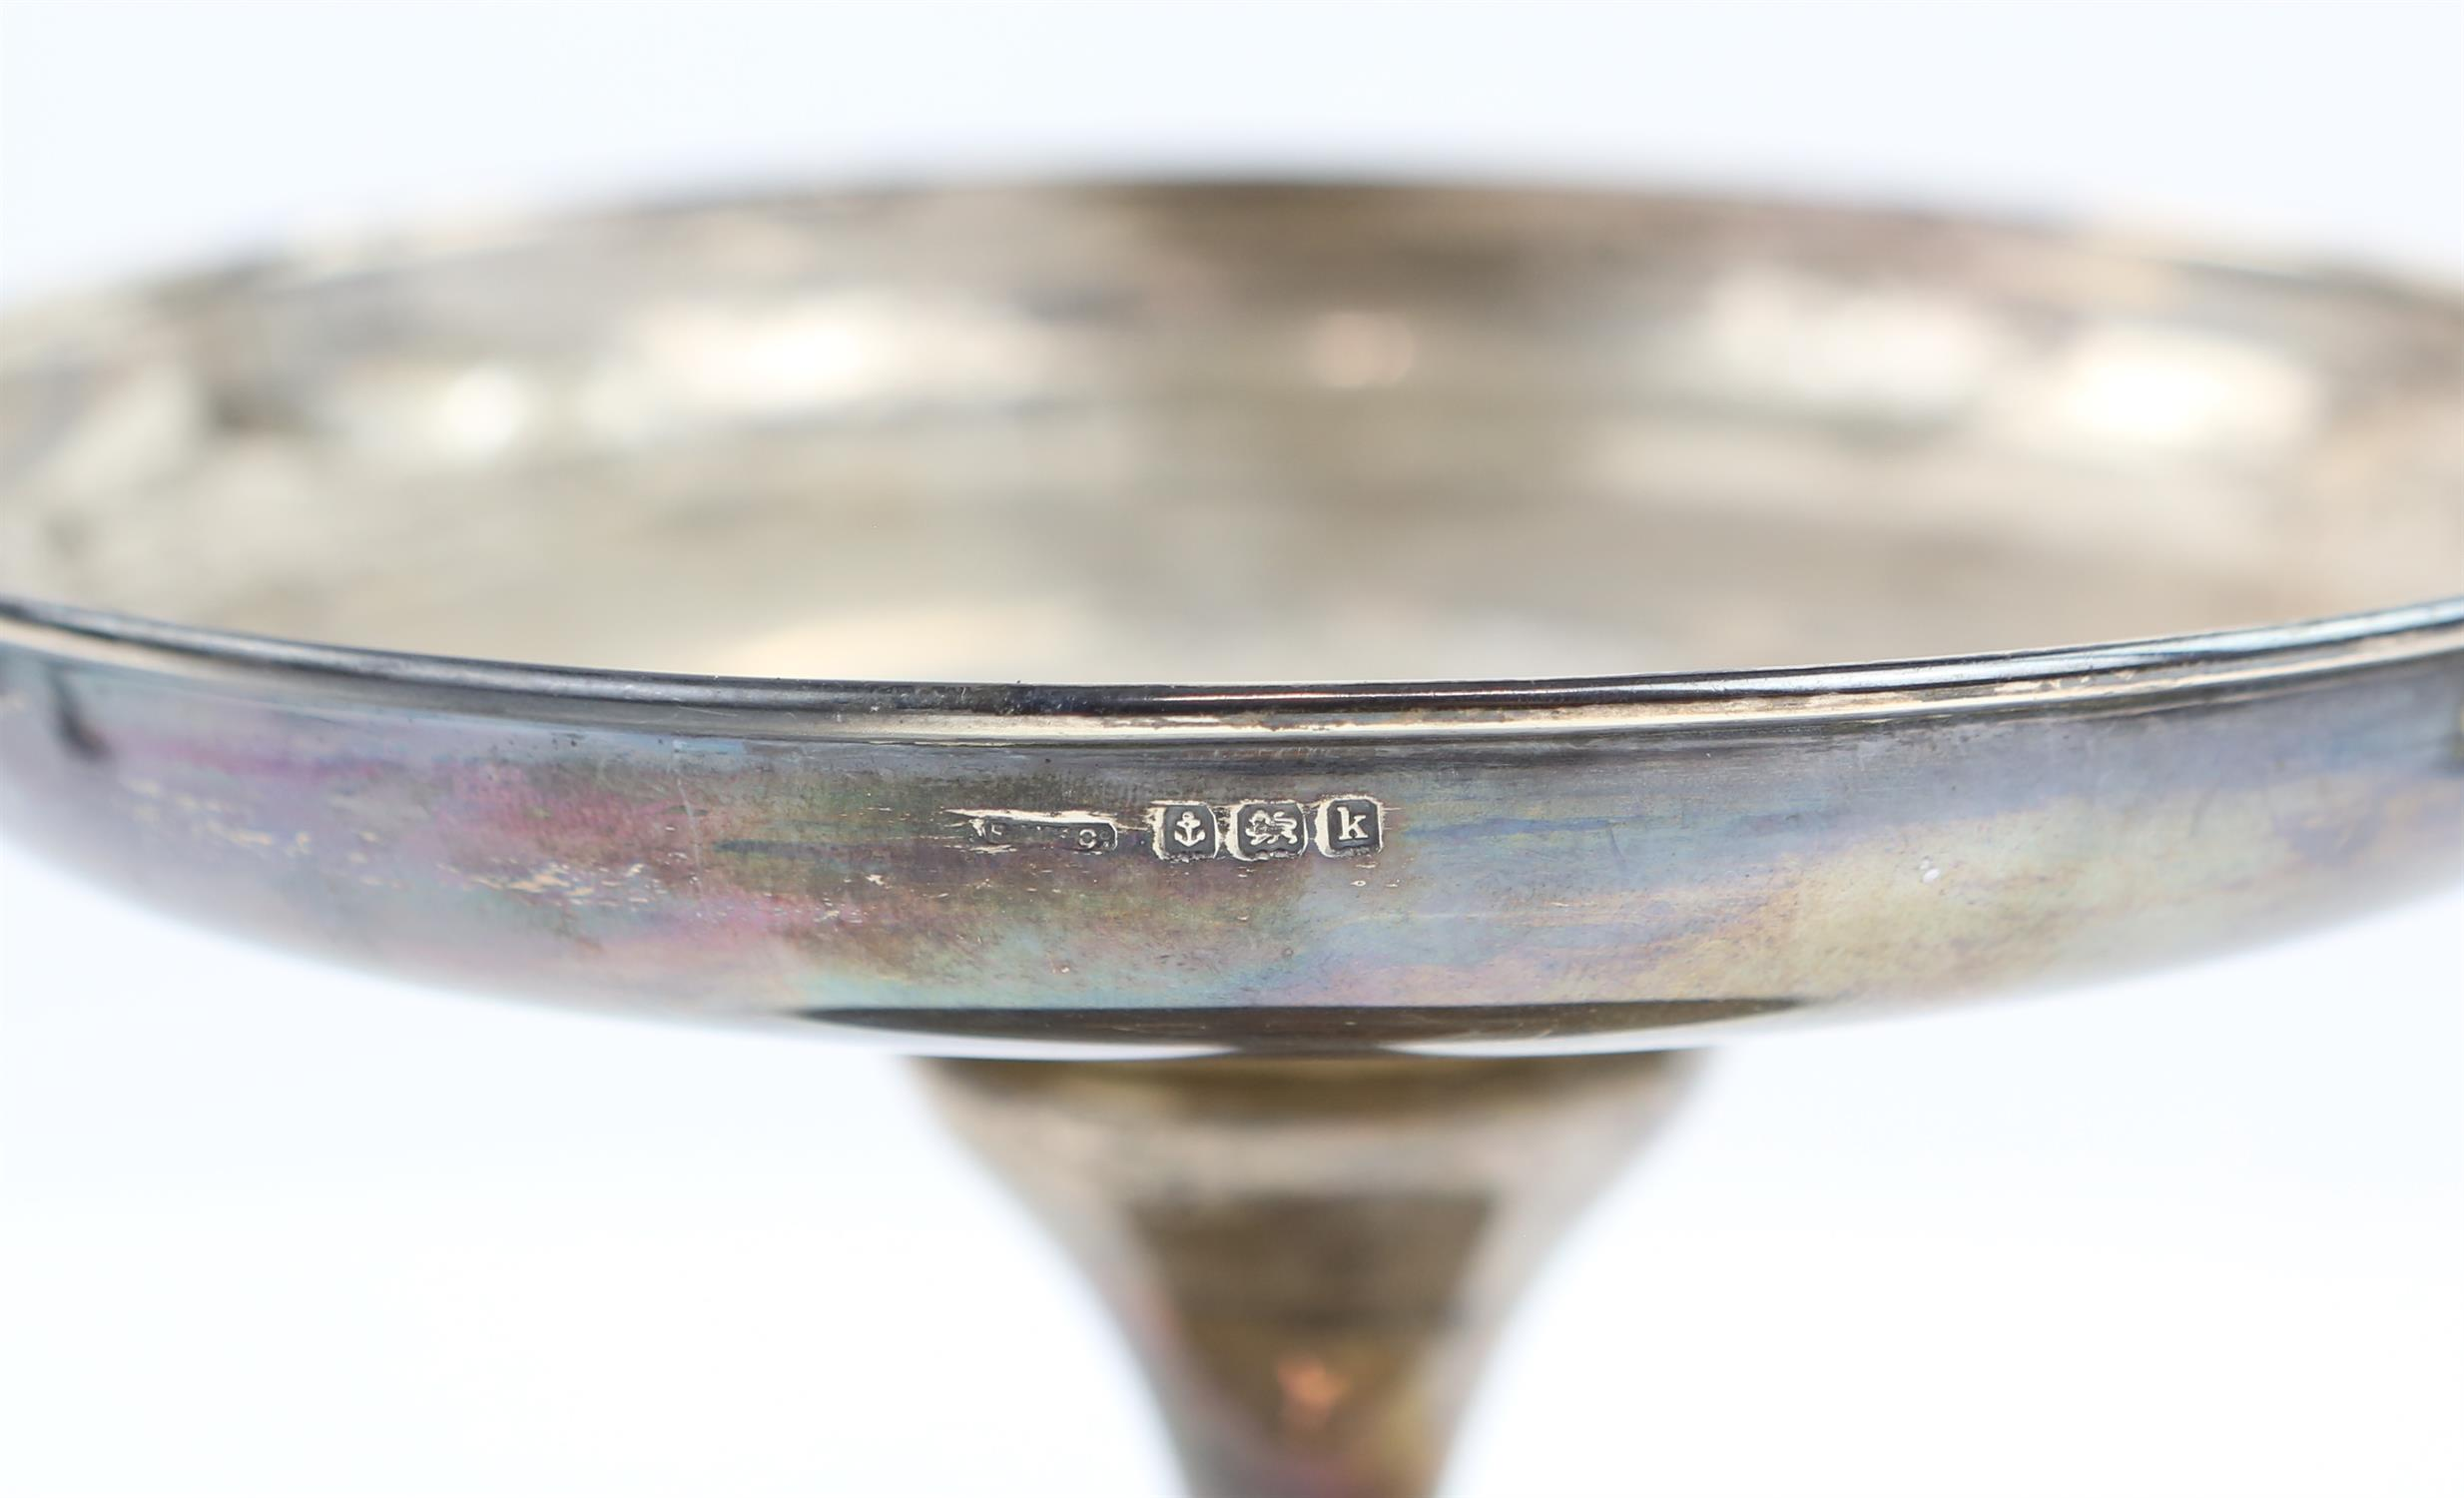 Victorian fern engraved silver mug, a silver sauce boat, a silver small trophy cup 403 grms 13 ozs - Image 3 of 10